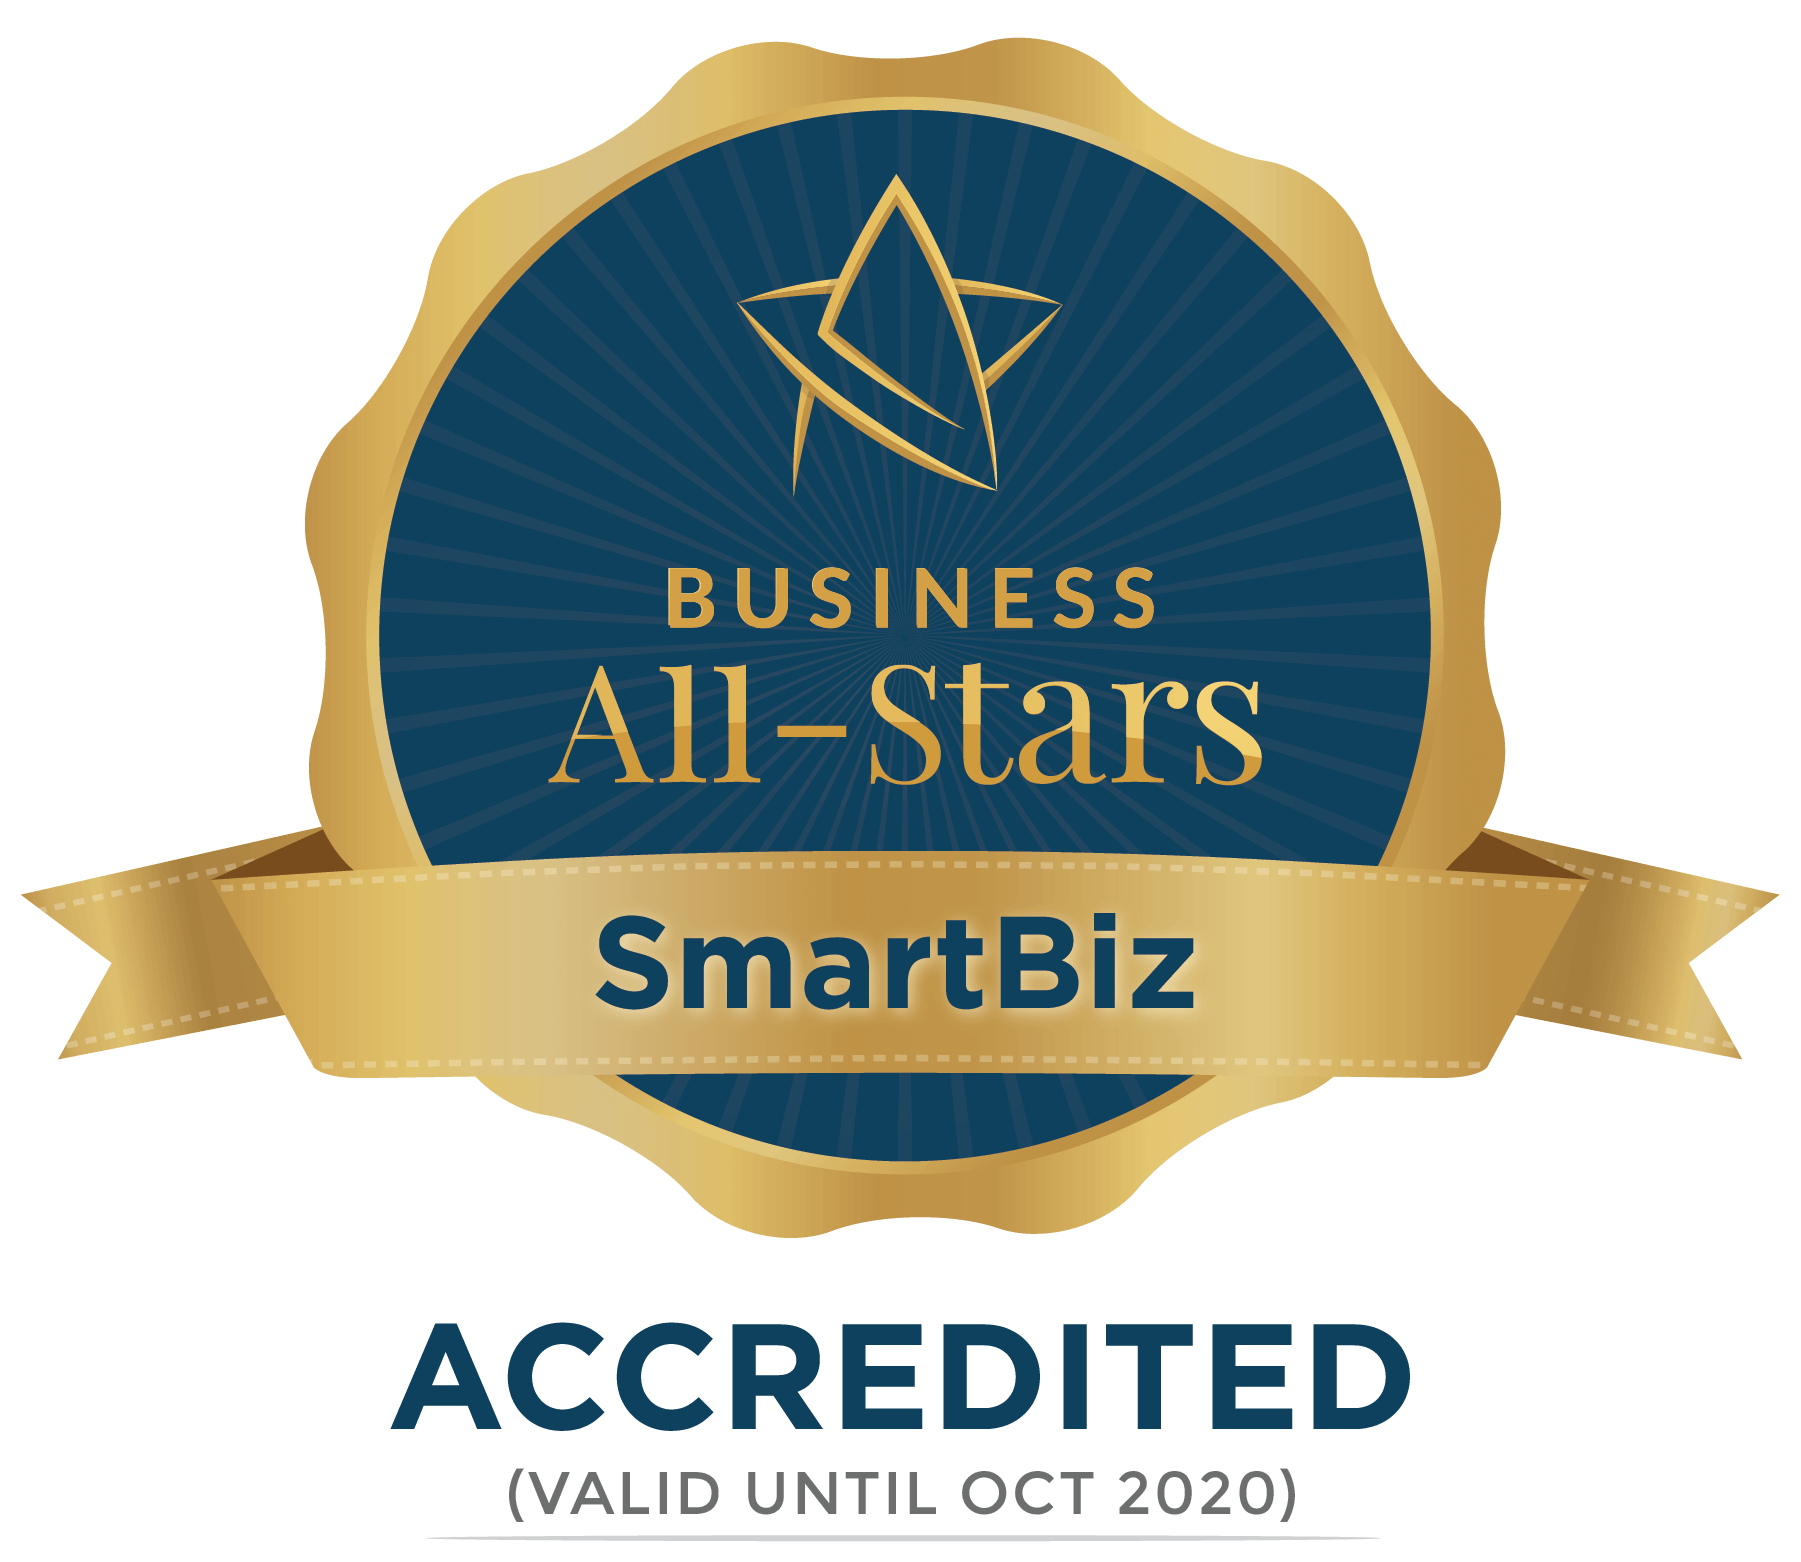 SmartBiz - Business All-Stars Accreditation